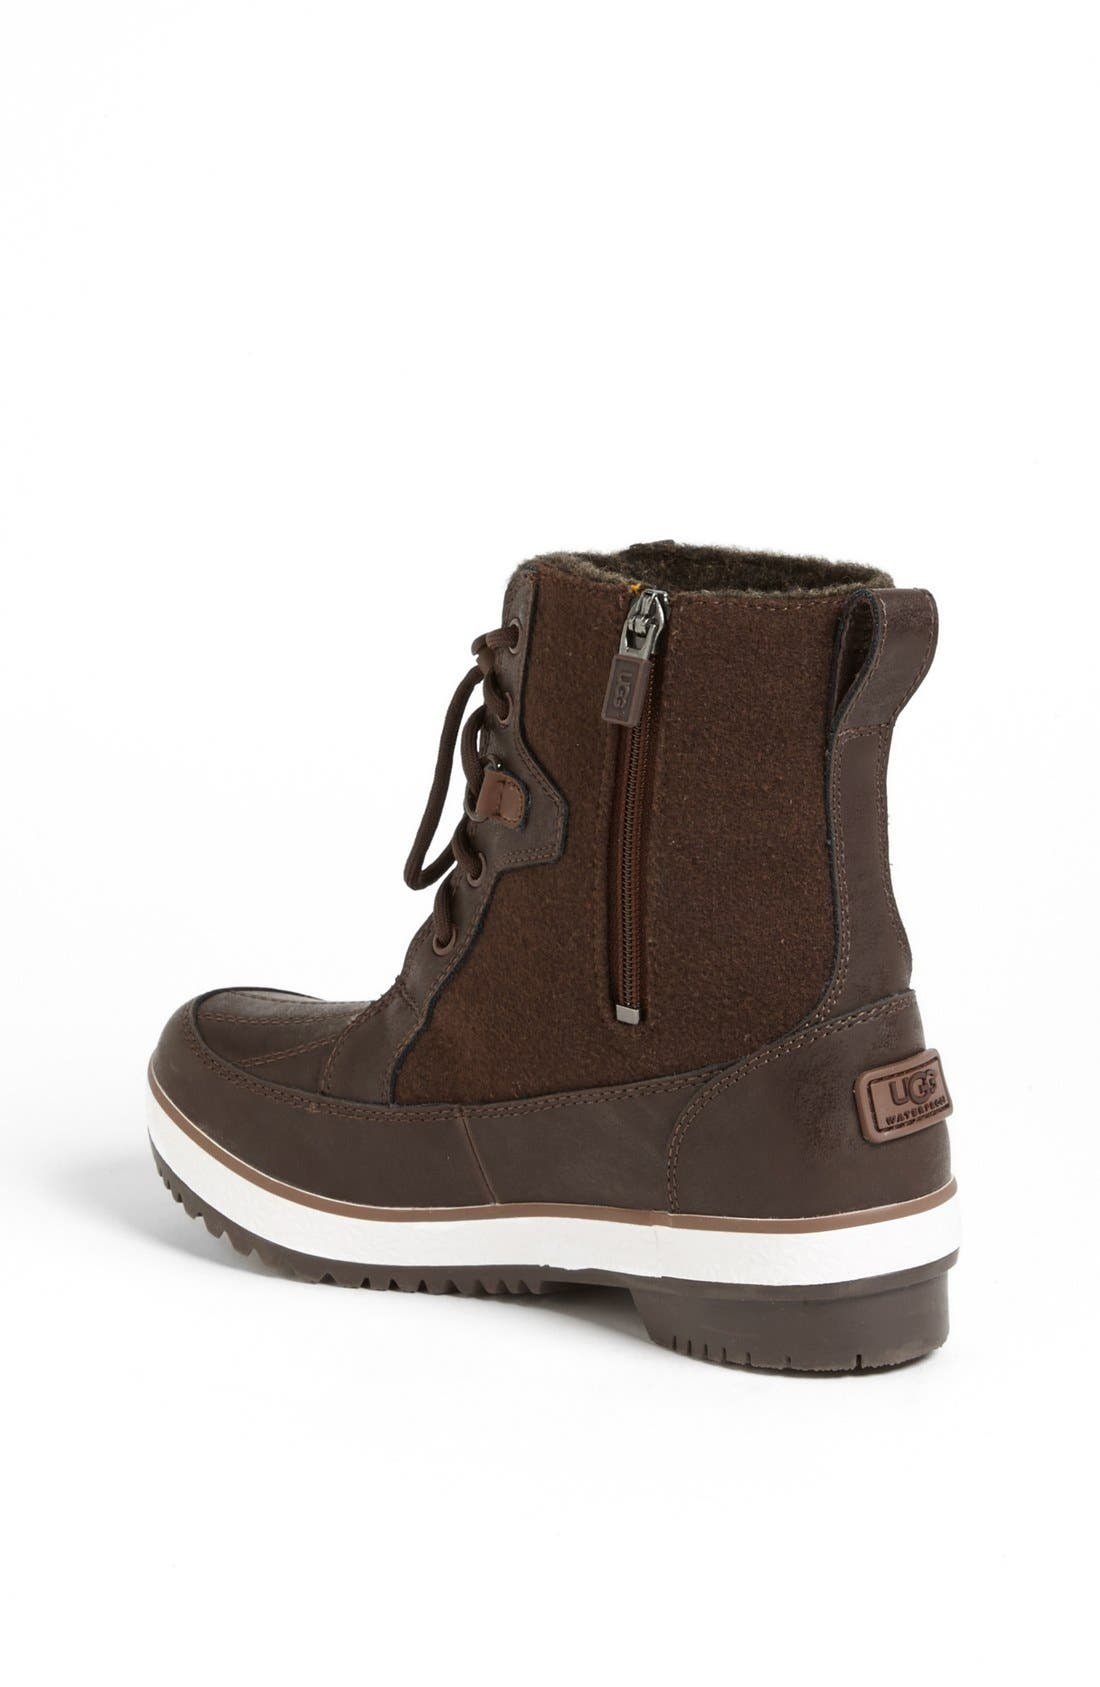 Alternate Image 2  - UGG® Australia 'Cabiro' Waterproof Boot (Little Kid & Big Kid)